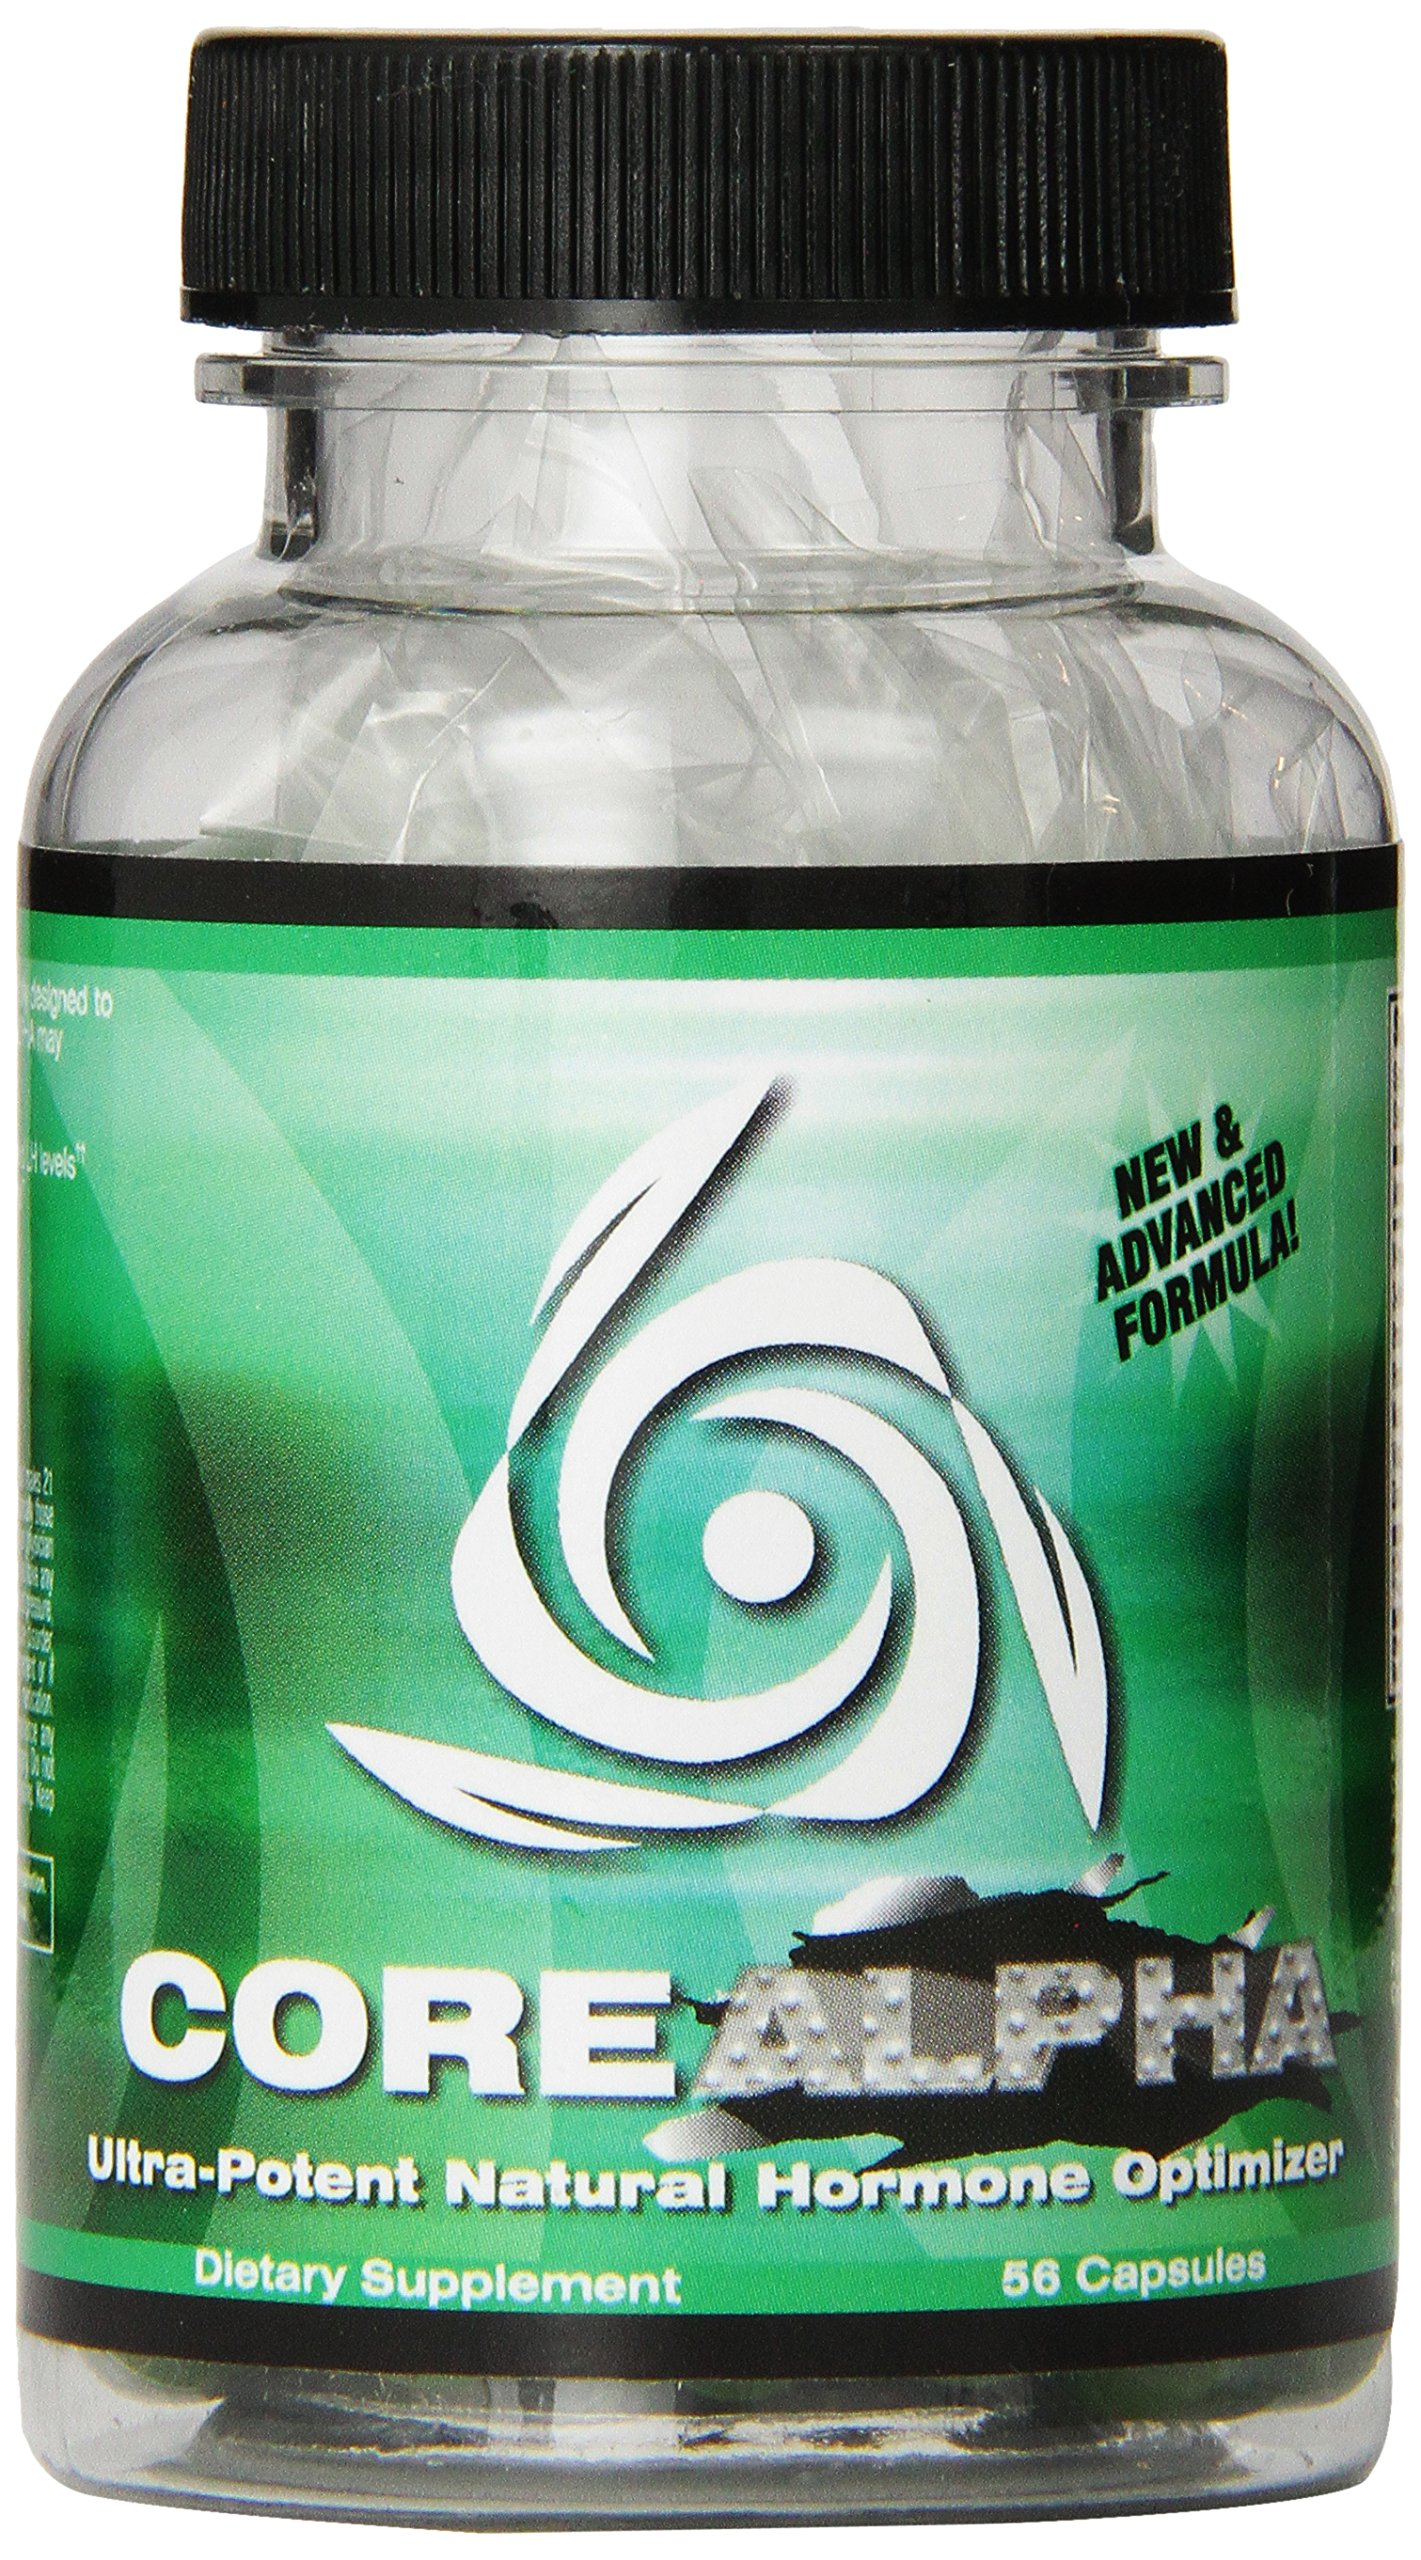 Core Nutritionals Alpha Dietary Supplement Capsules, 56 Count